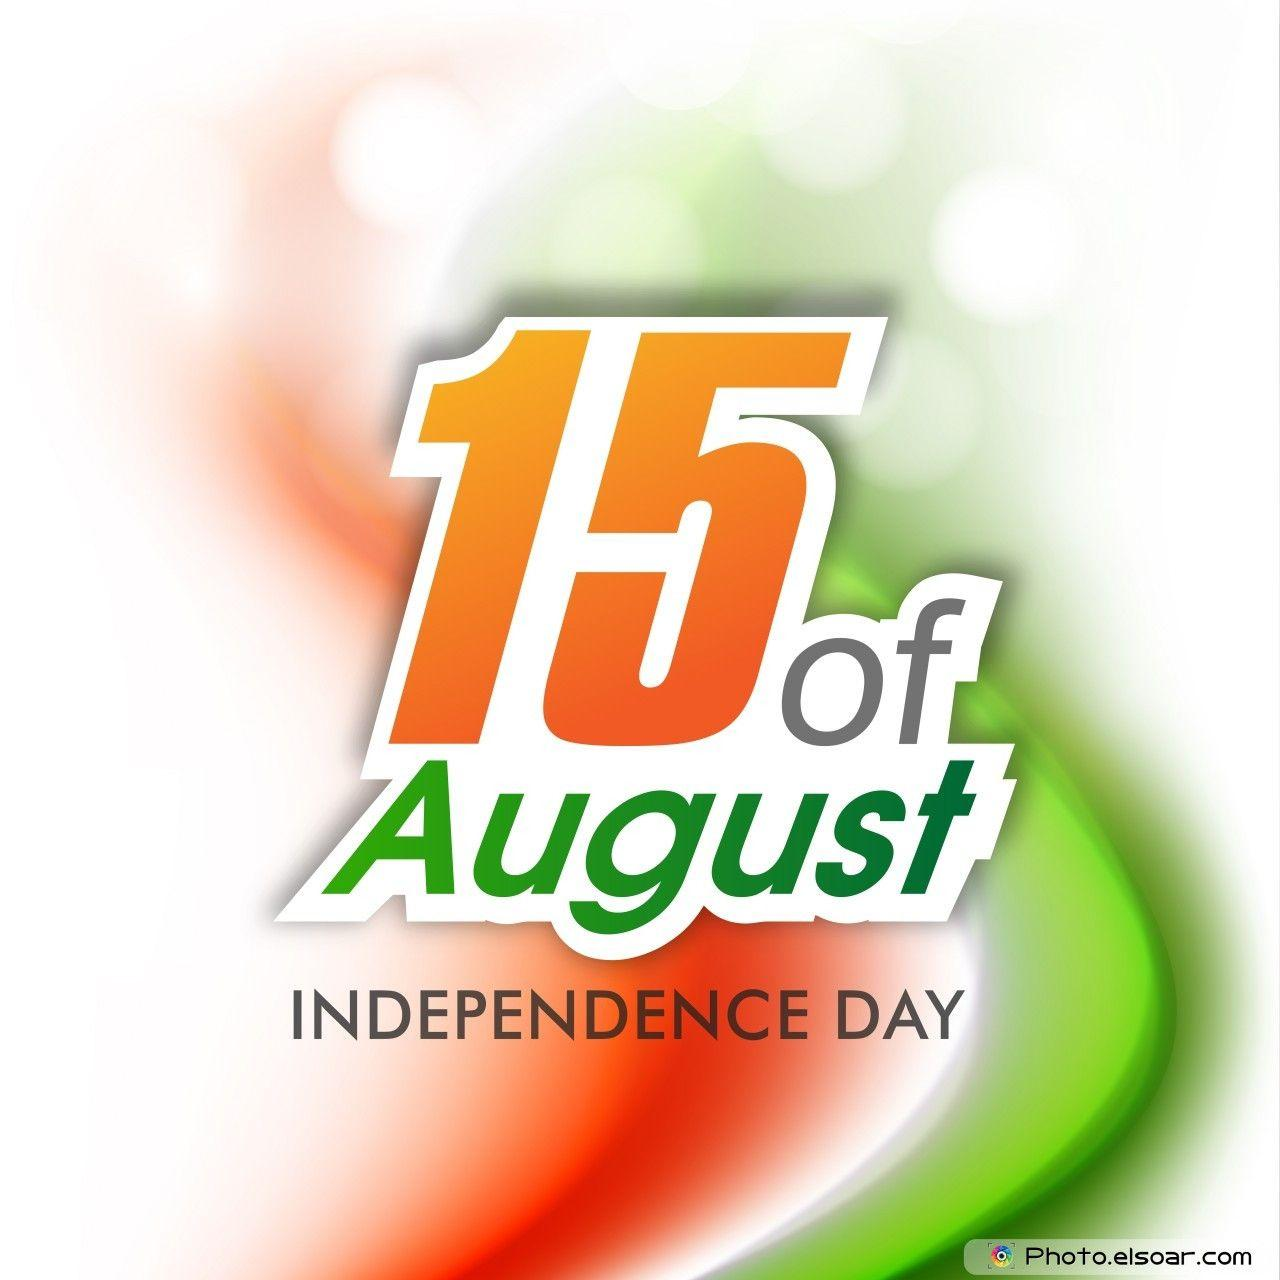 essay on independence day of india for kids